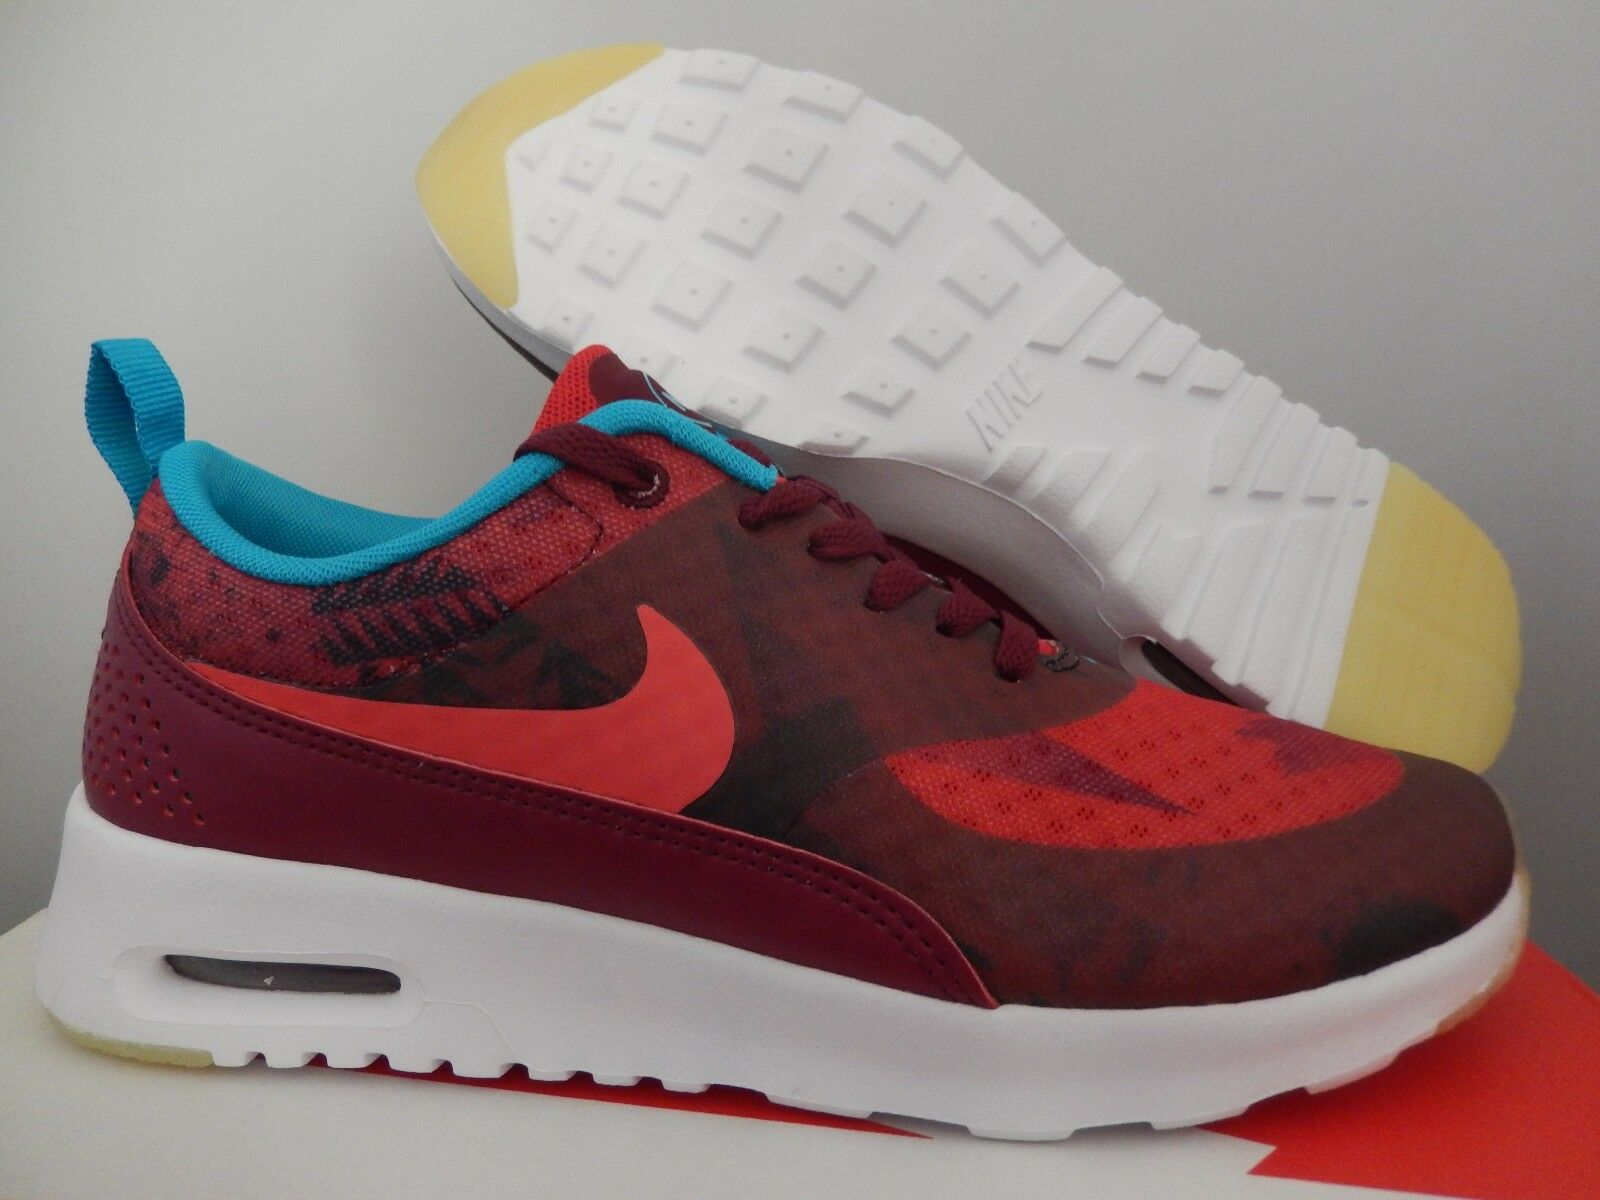 WMNS NIKE AIR MAX THEA PRINT N7 GARNET-UNIVERSITY RED SZ 6.5 [811362-664]